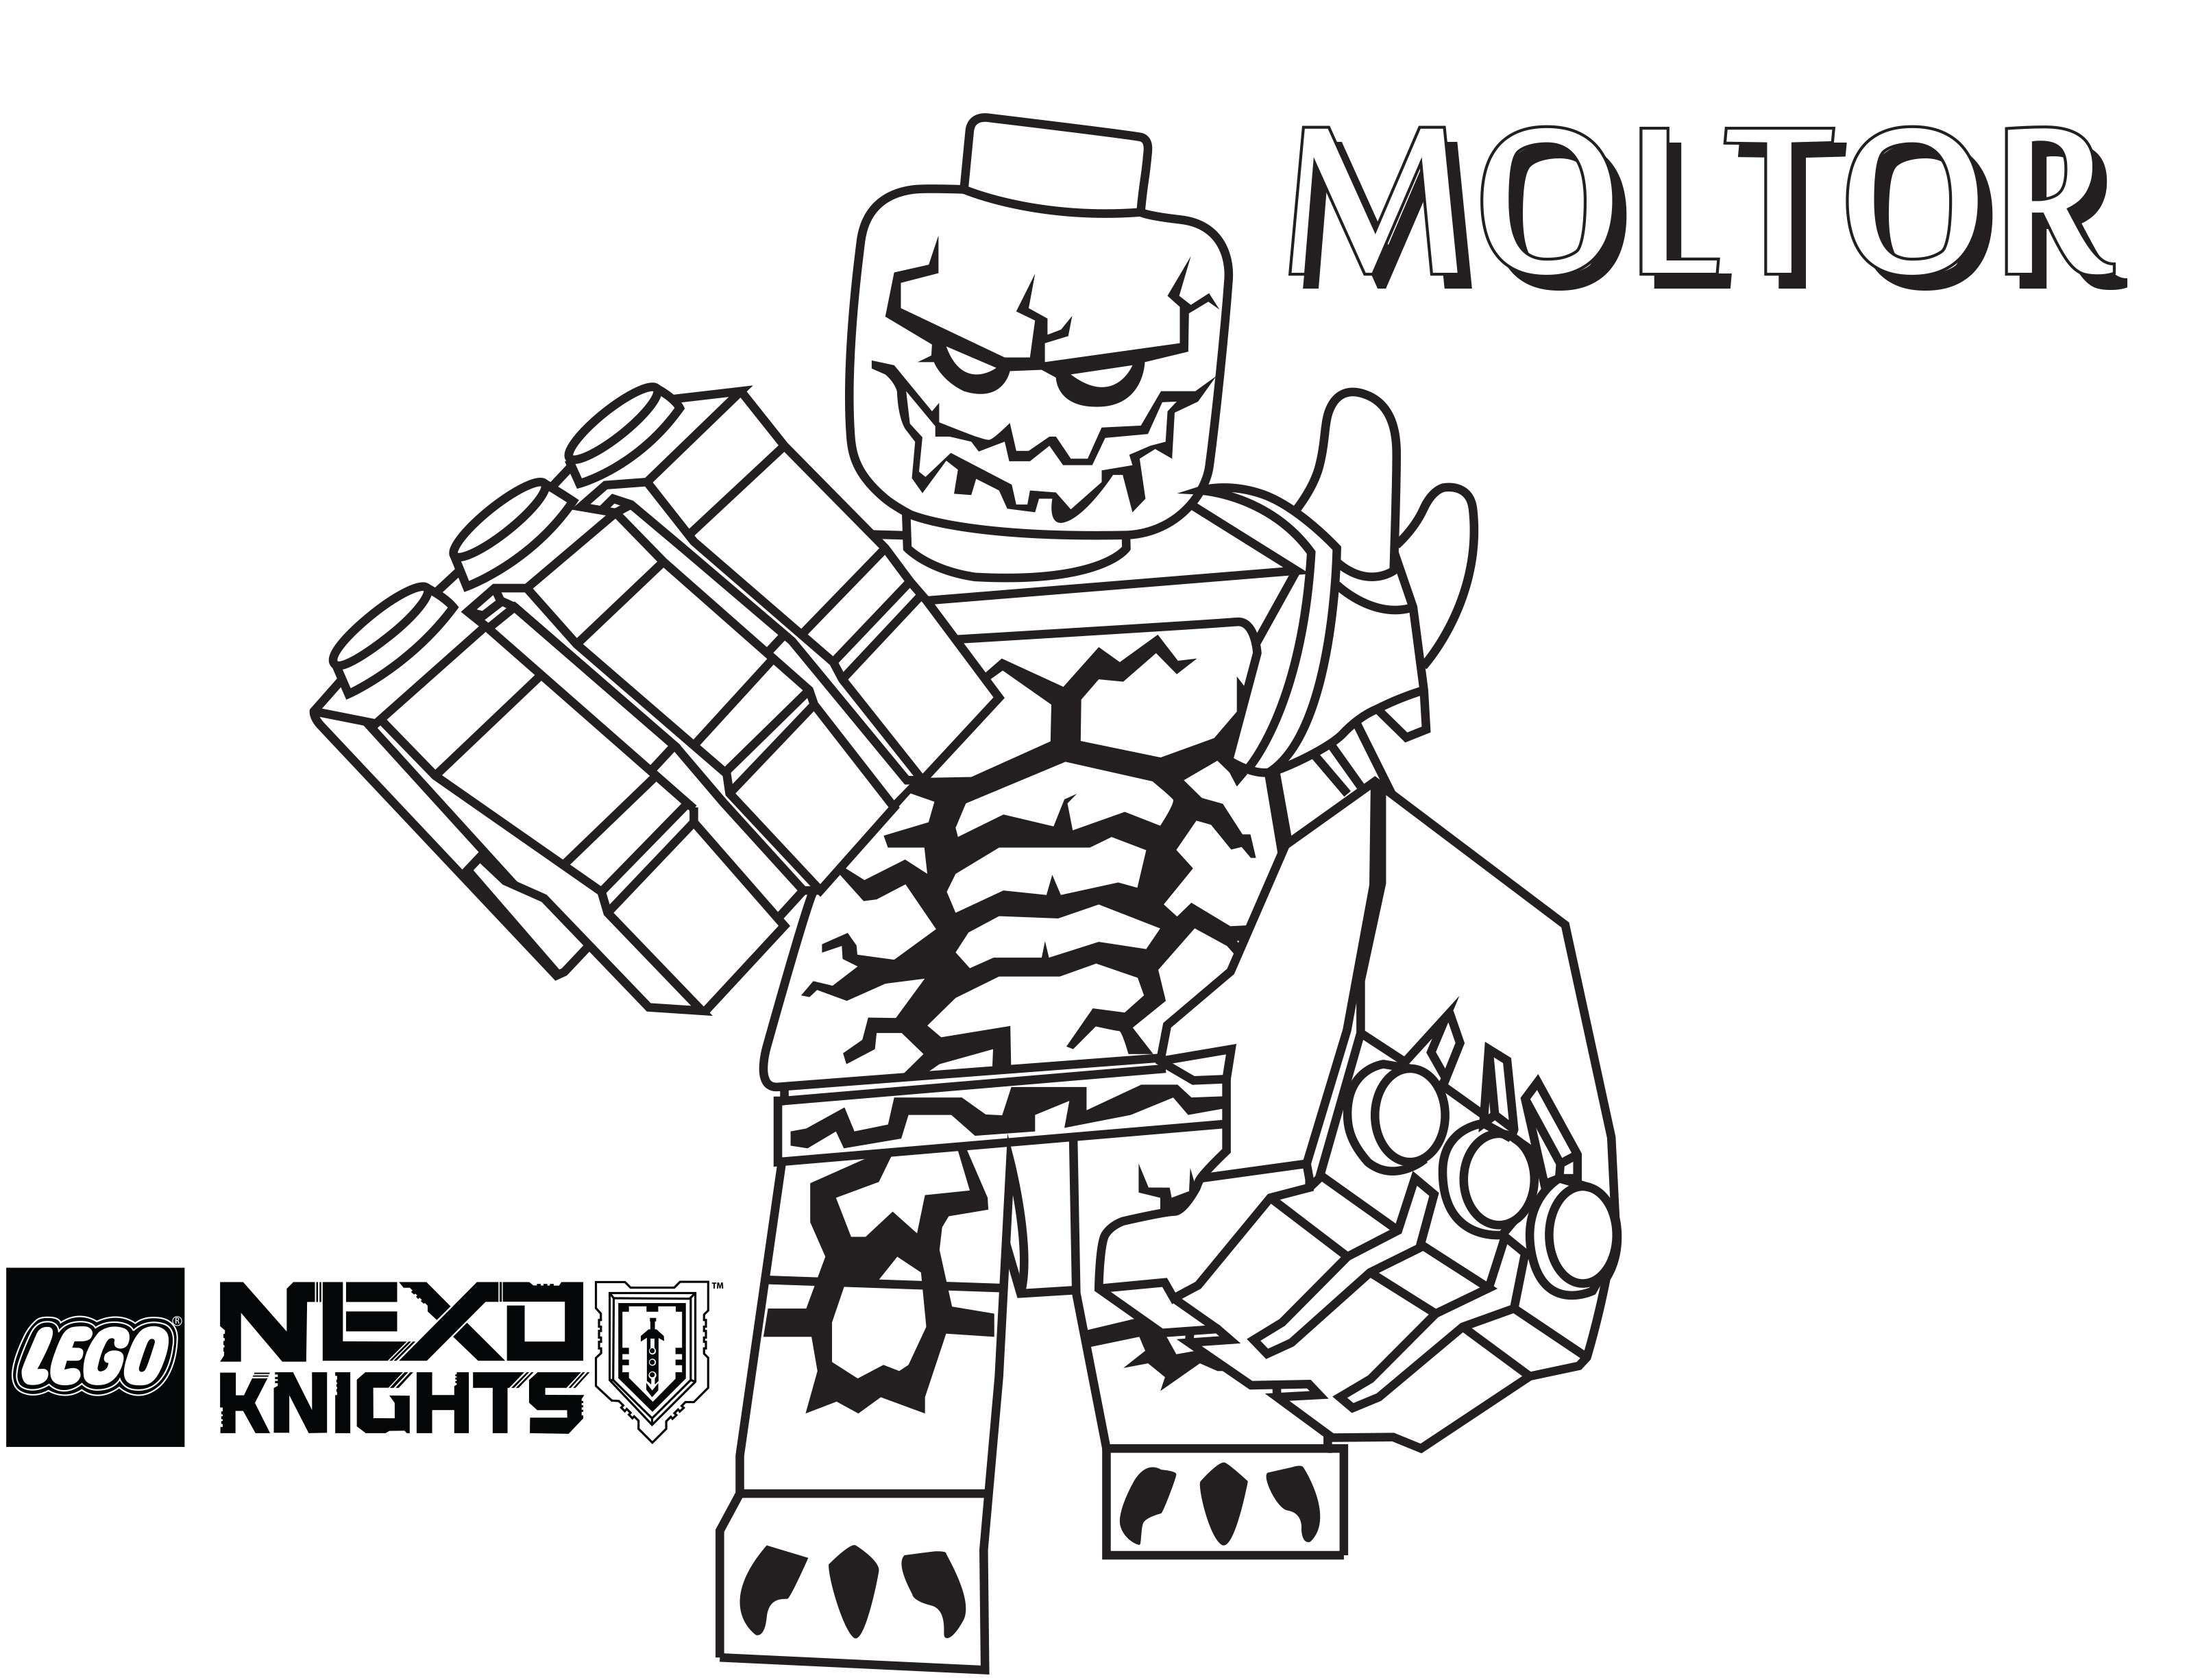 Coloring Pages Nexo Knights : Free coloring pages of lego knights